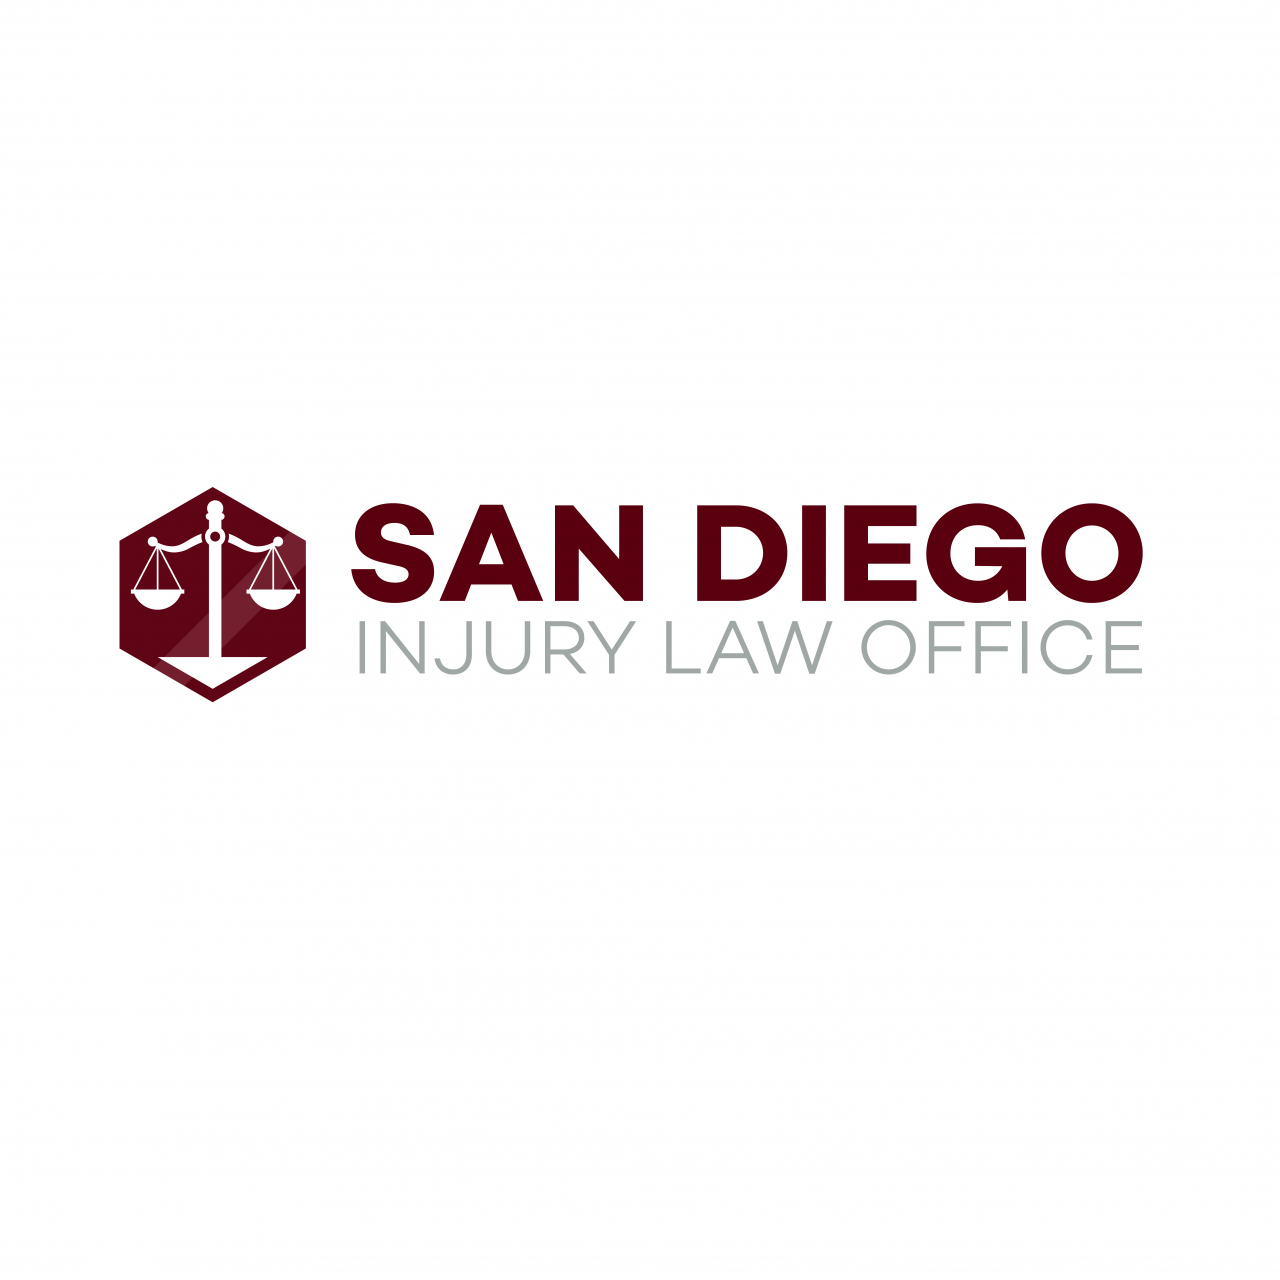 San Diego Injury Law Office logo